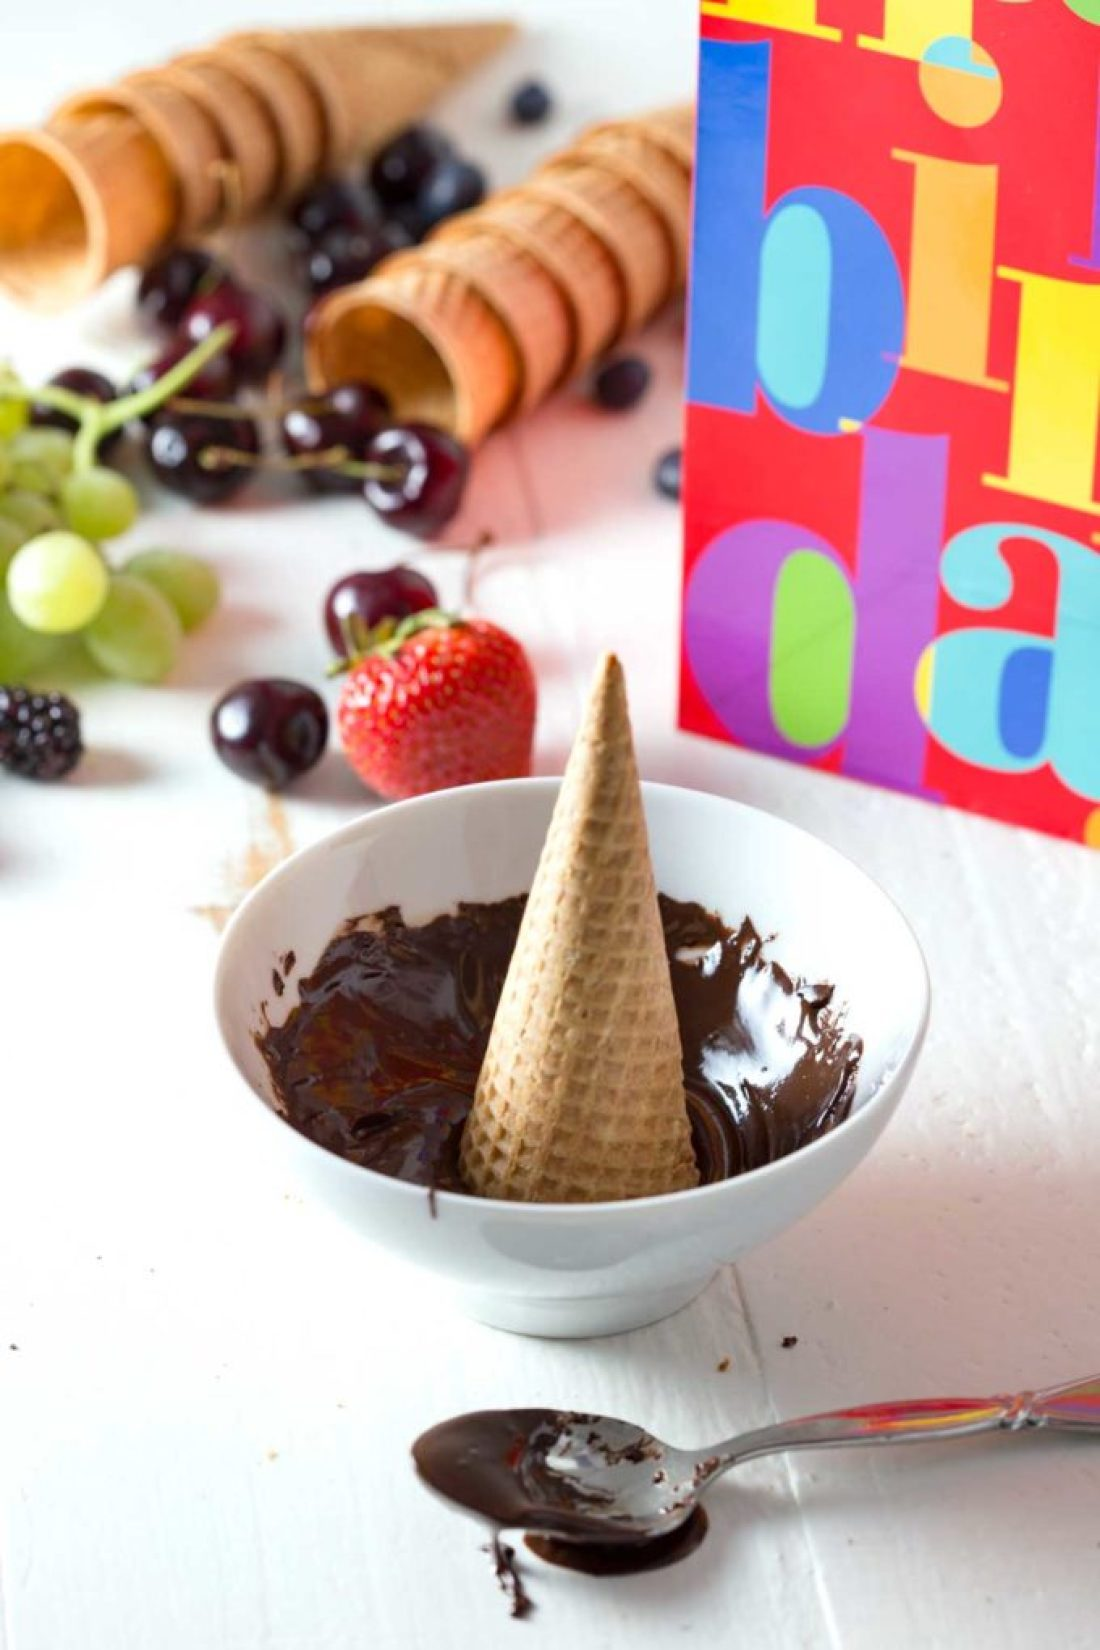 Dipping a cone in chocolate